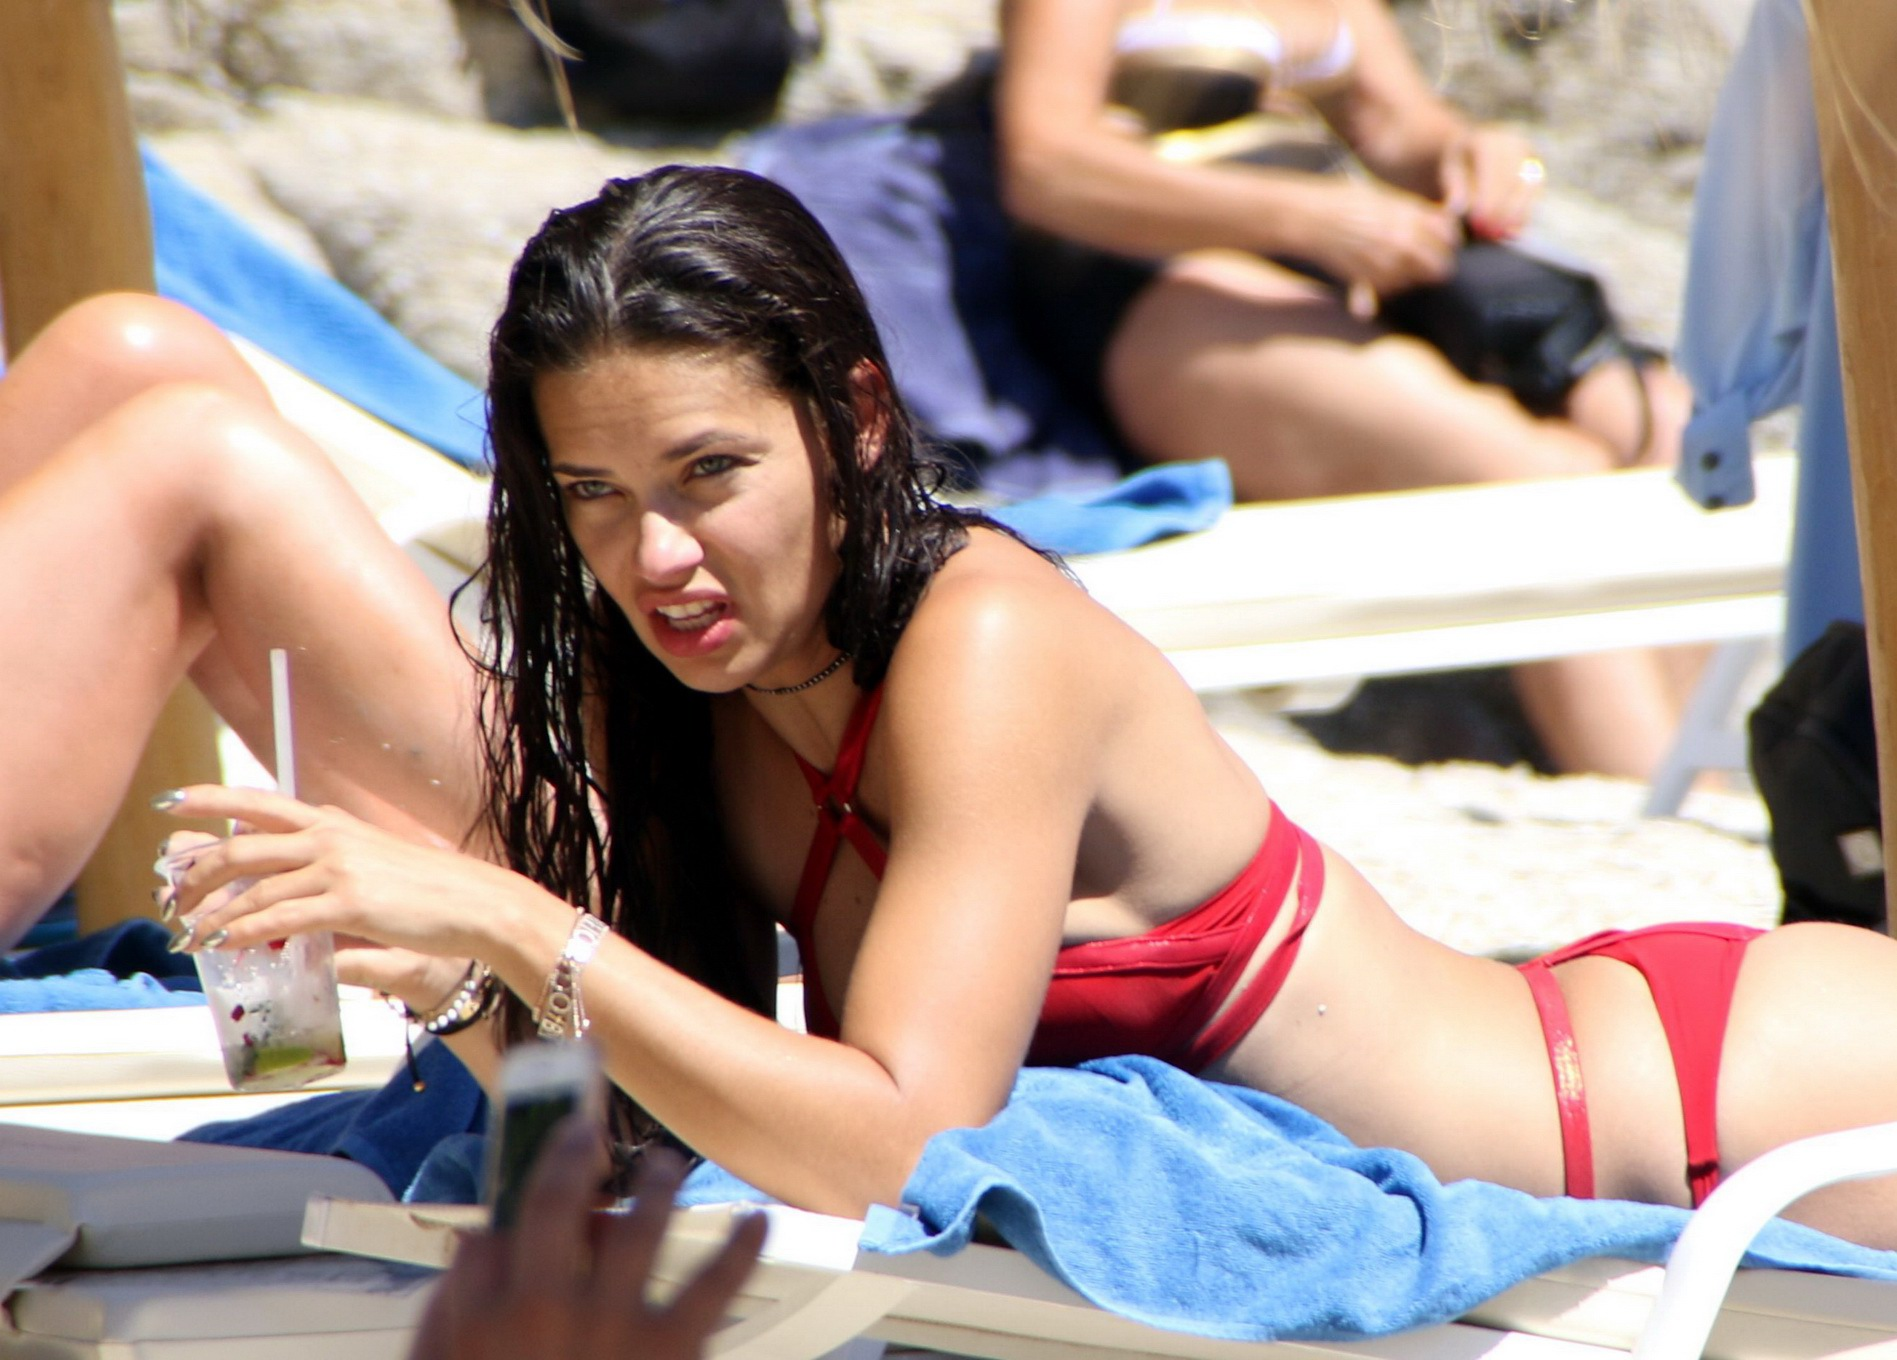 displaying her hot body in a tiny red bikini at the beach in mykonos